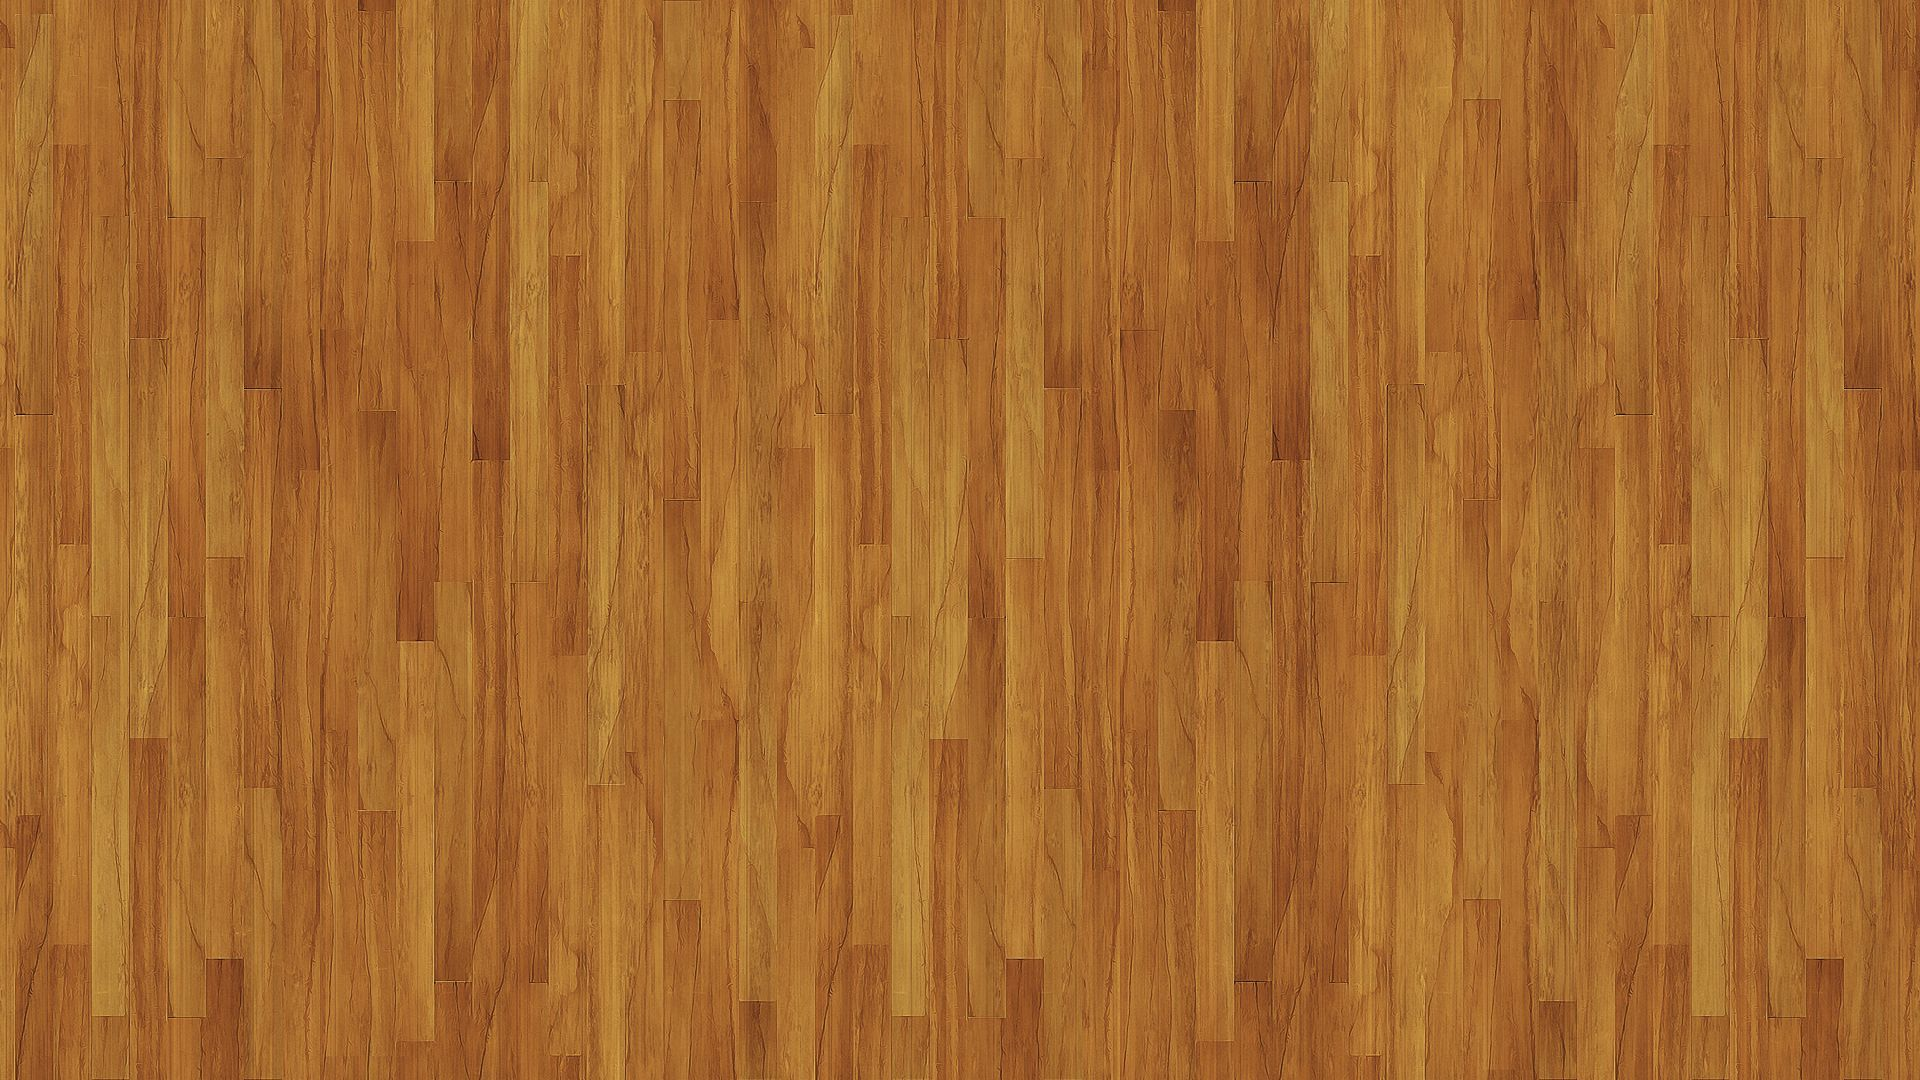 Wood floor wallpaper wallpapersafari for Hardwood laminate